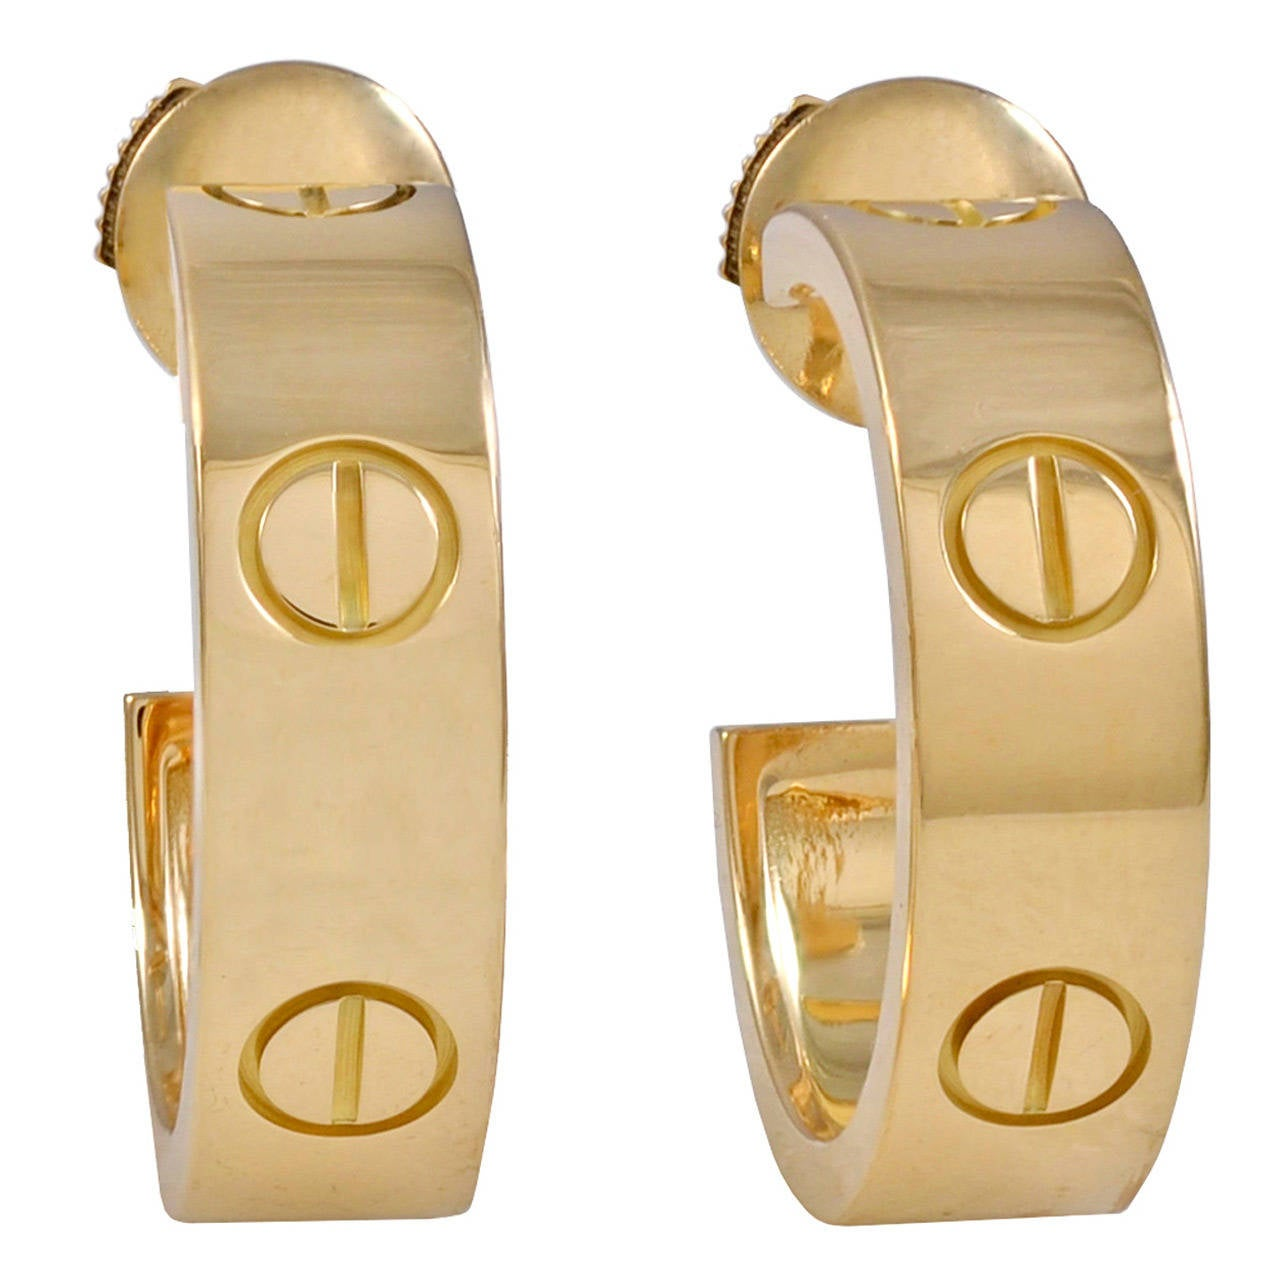 Cartier Gold LOVE Earrings For Sale at 1stdibs